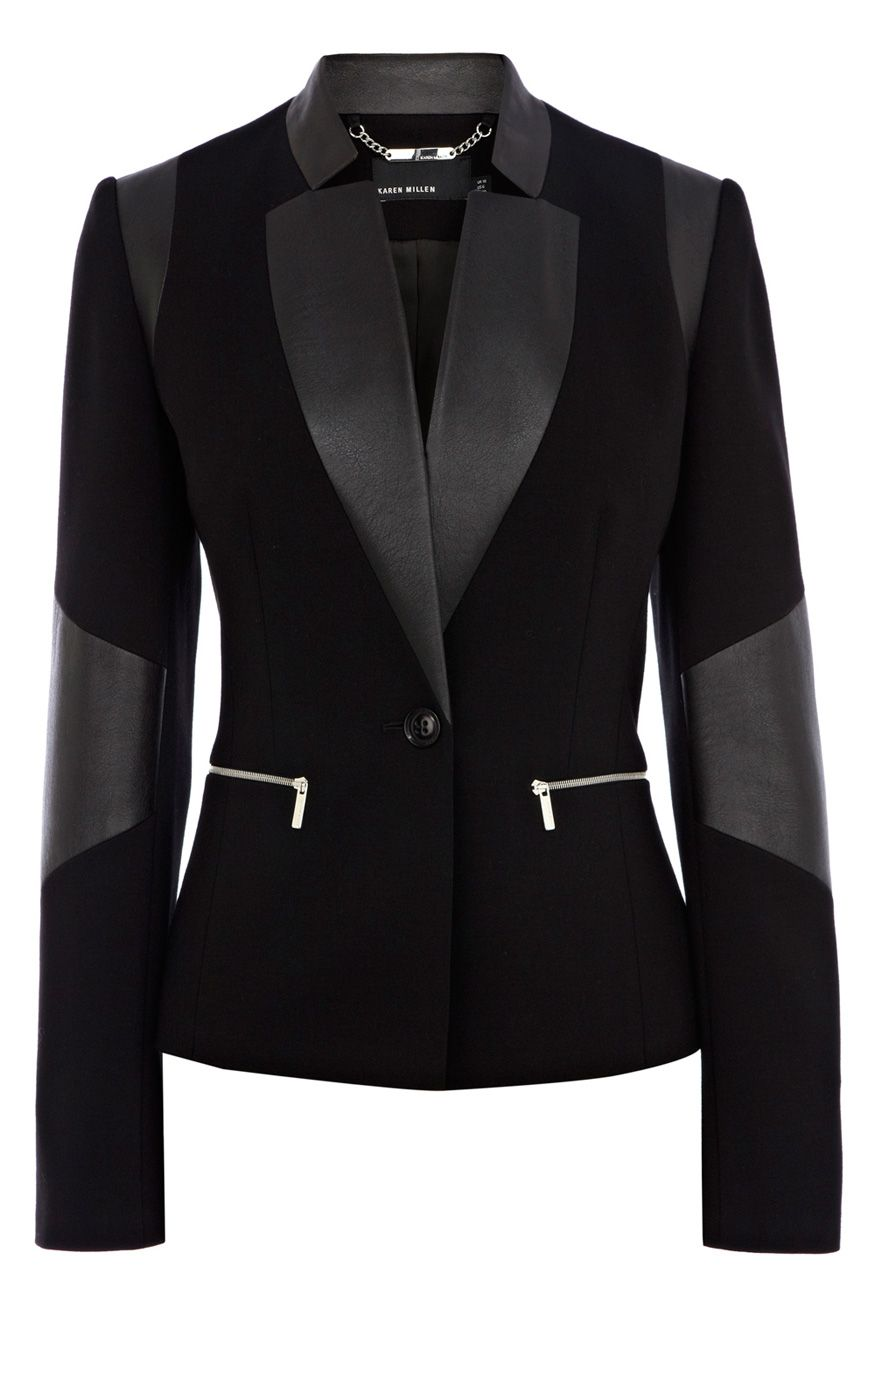 Enjoy free shipping and easy returns every day at Kohl's. Find great deals on Womens Black Blazers & Suit Jackets at Kohl's today!